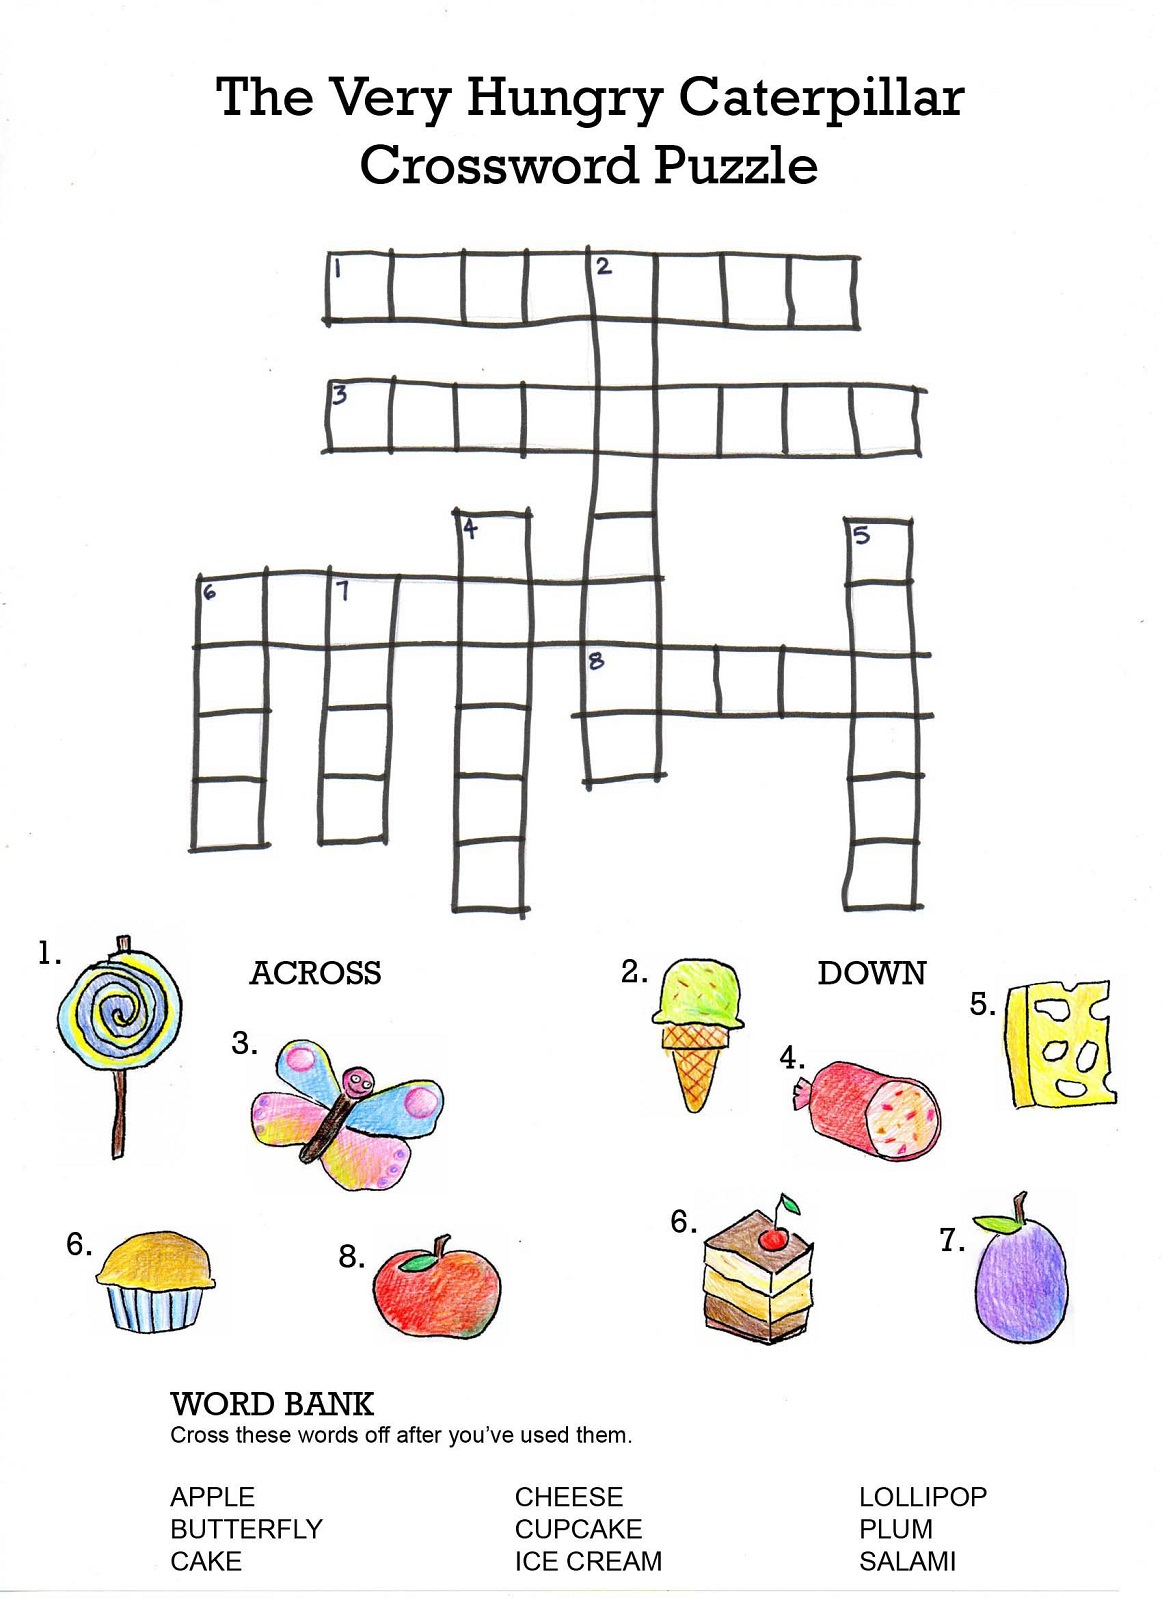 easy-crossword-puzzles-for-kids-caterpillar